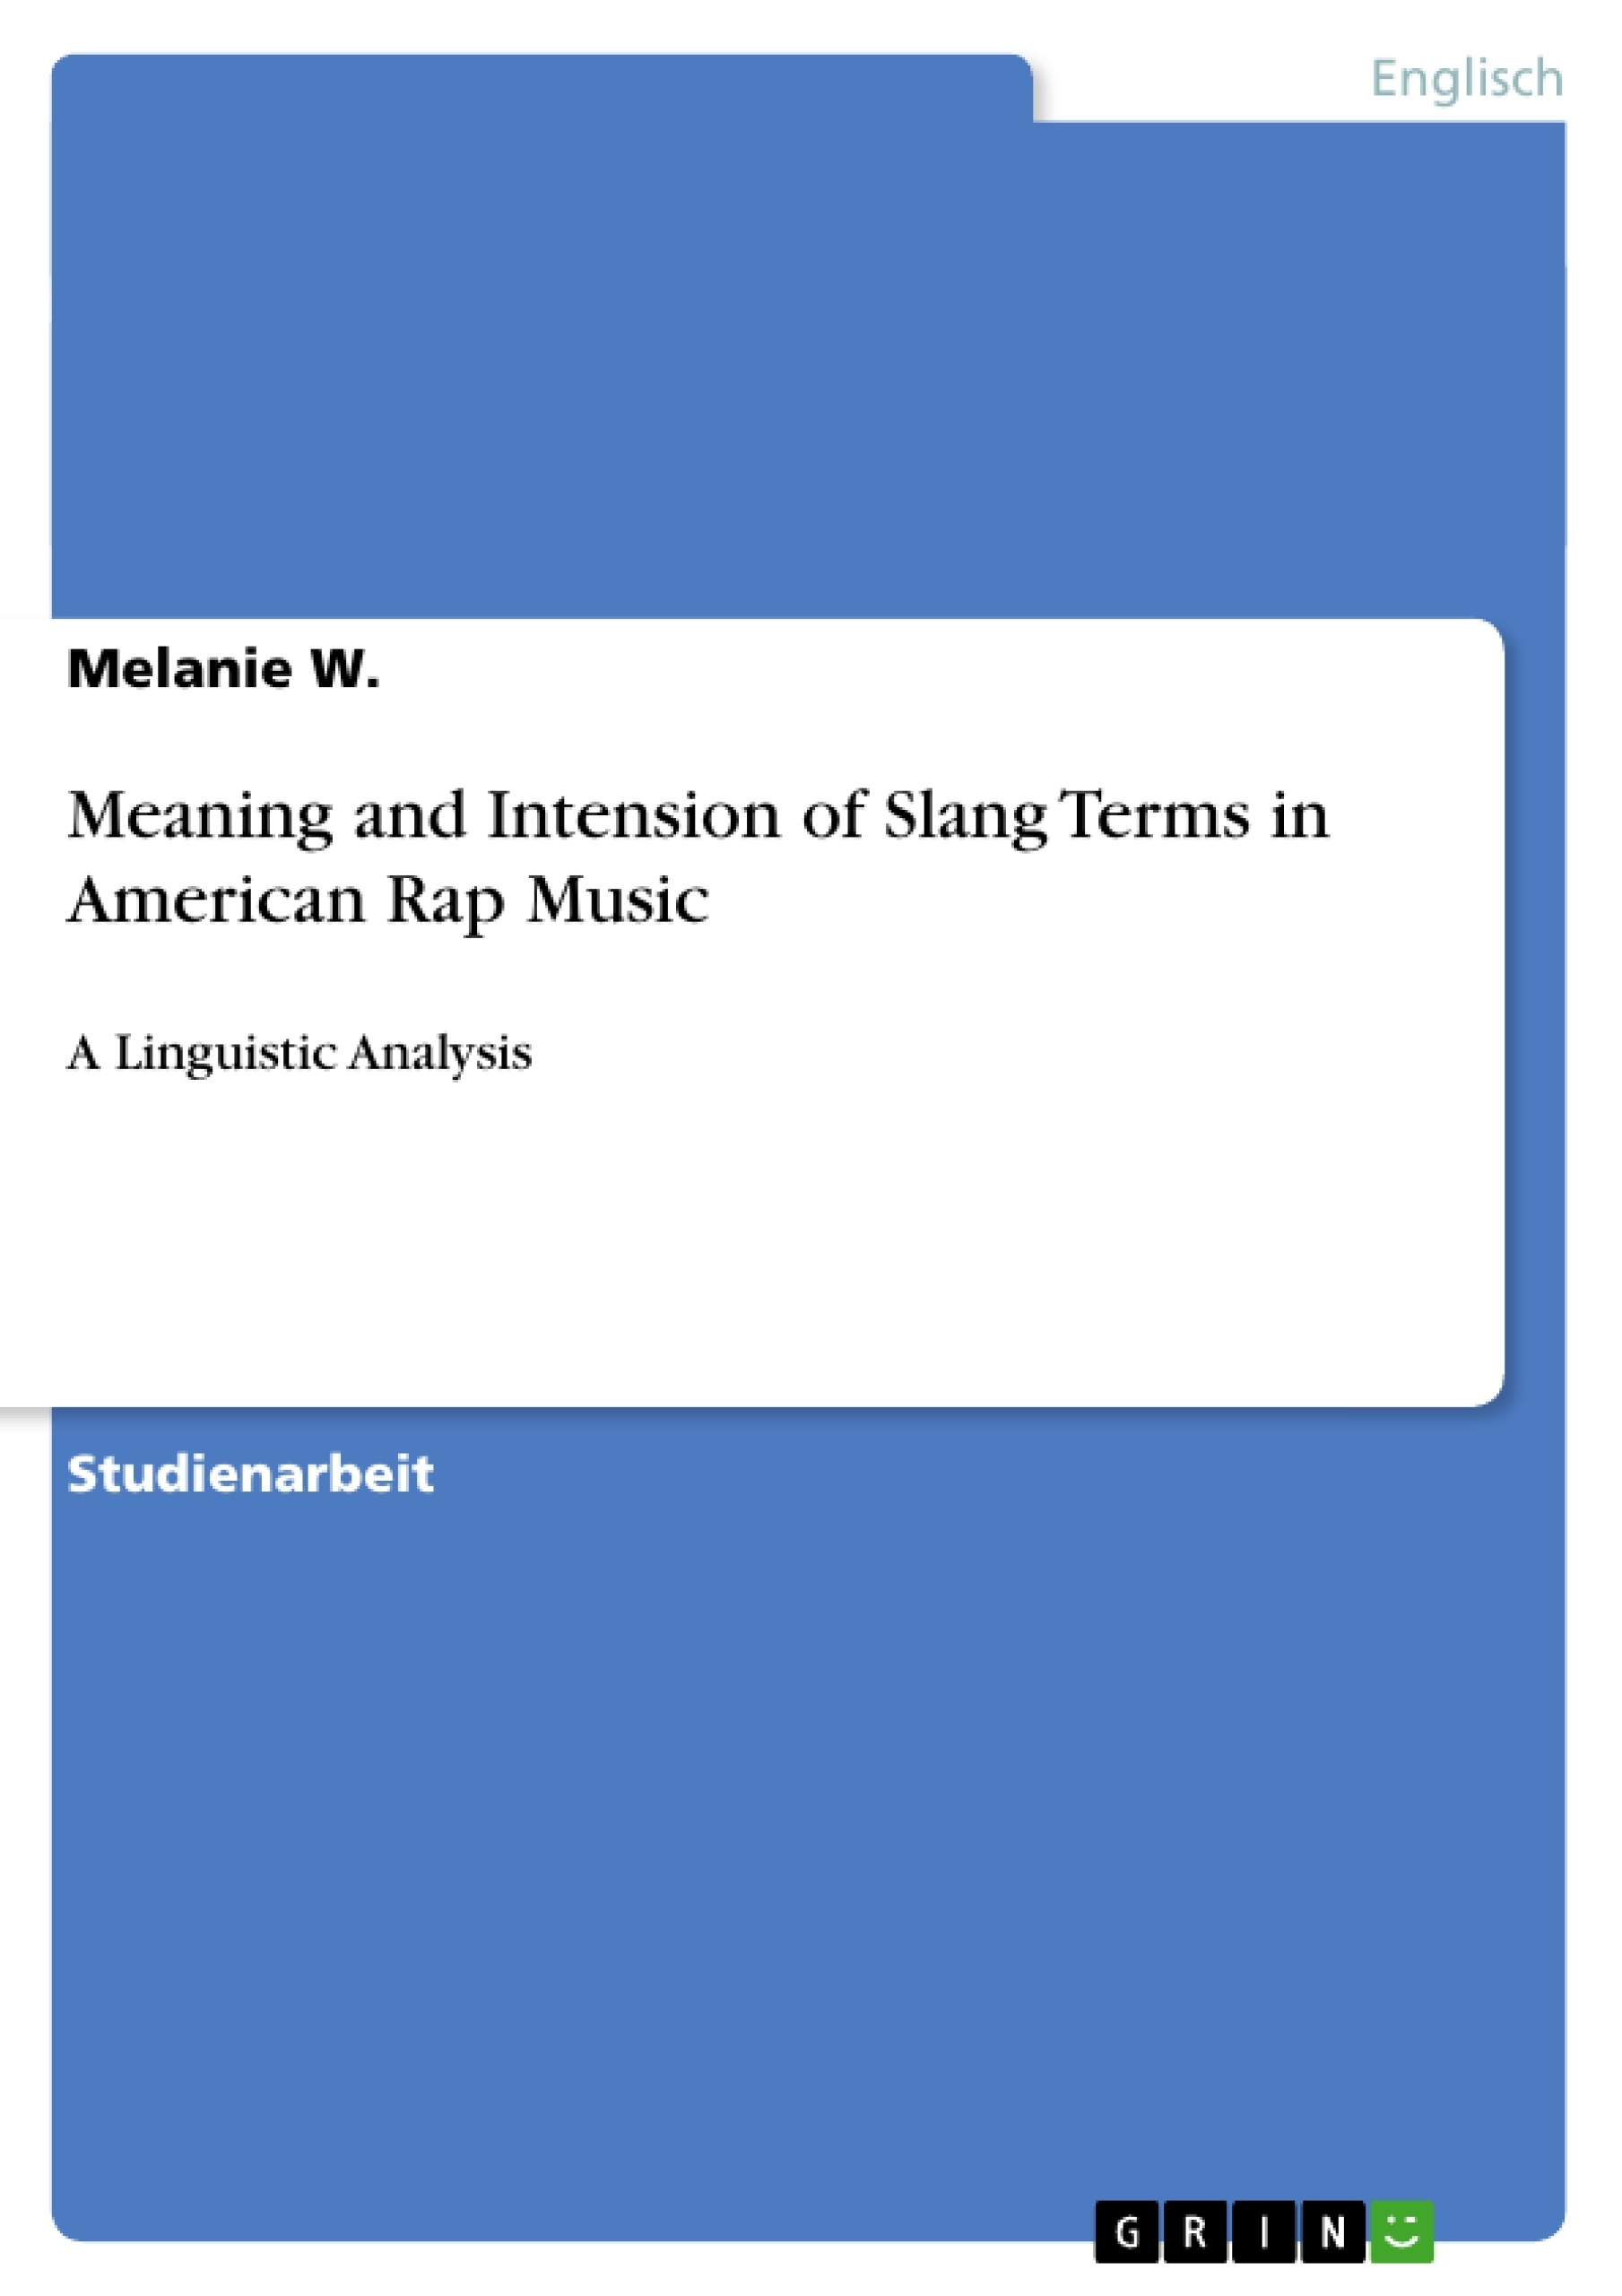 GRIN - Meaning and Intension of Slang Terms in American Rap Music